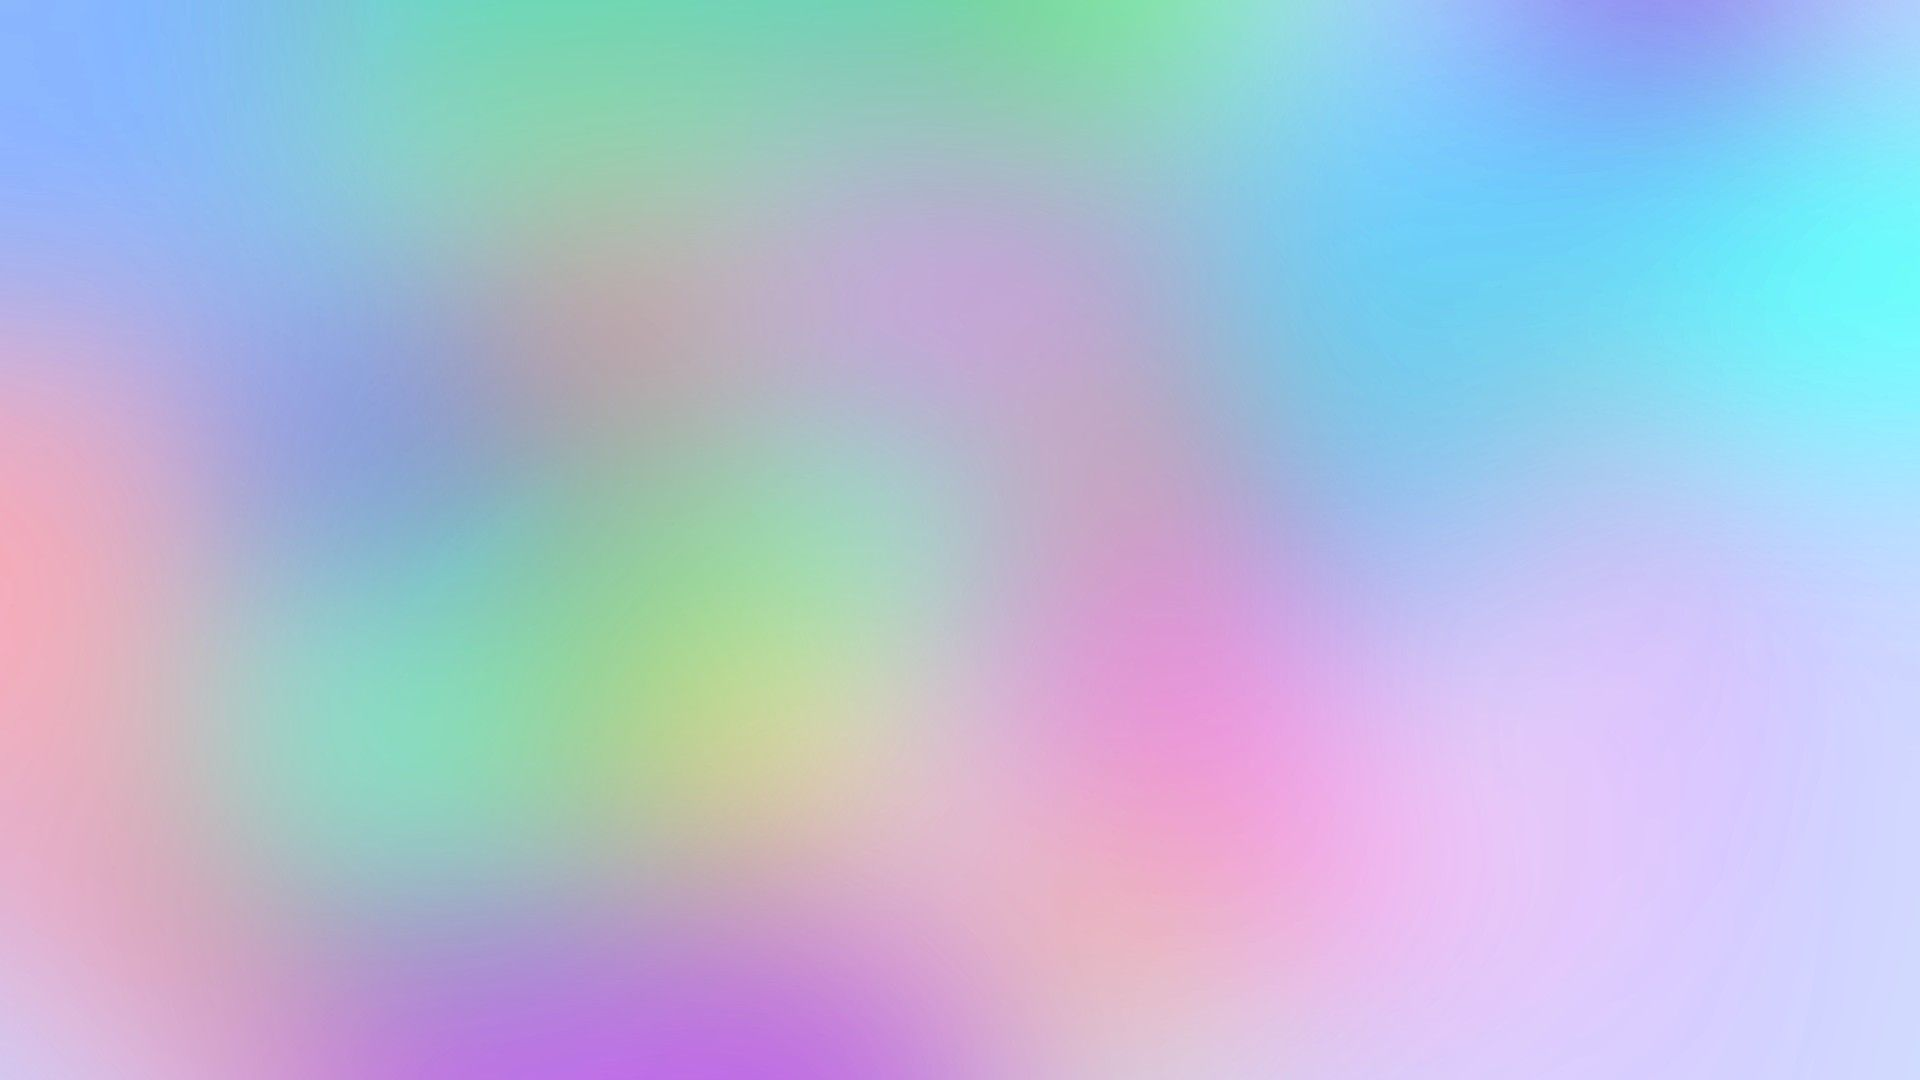 "750x1334 iPhonepapers.com | iPhone wallpaper | vk40-rainbow-abstract-colors ..."">"